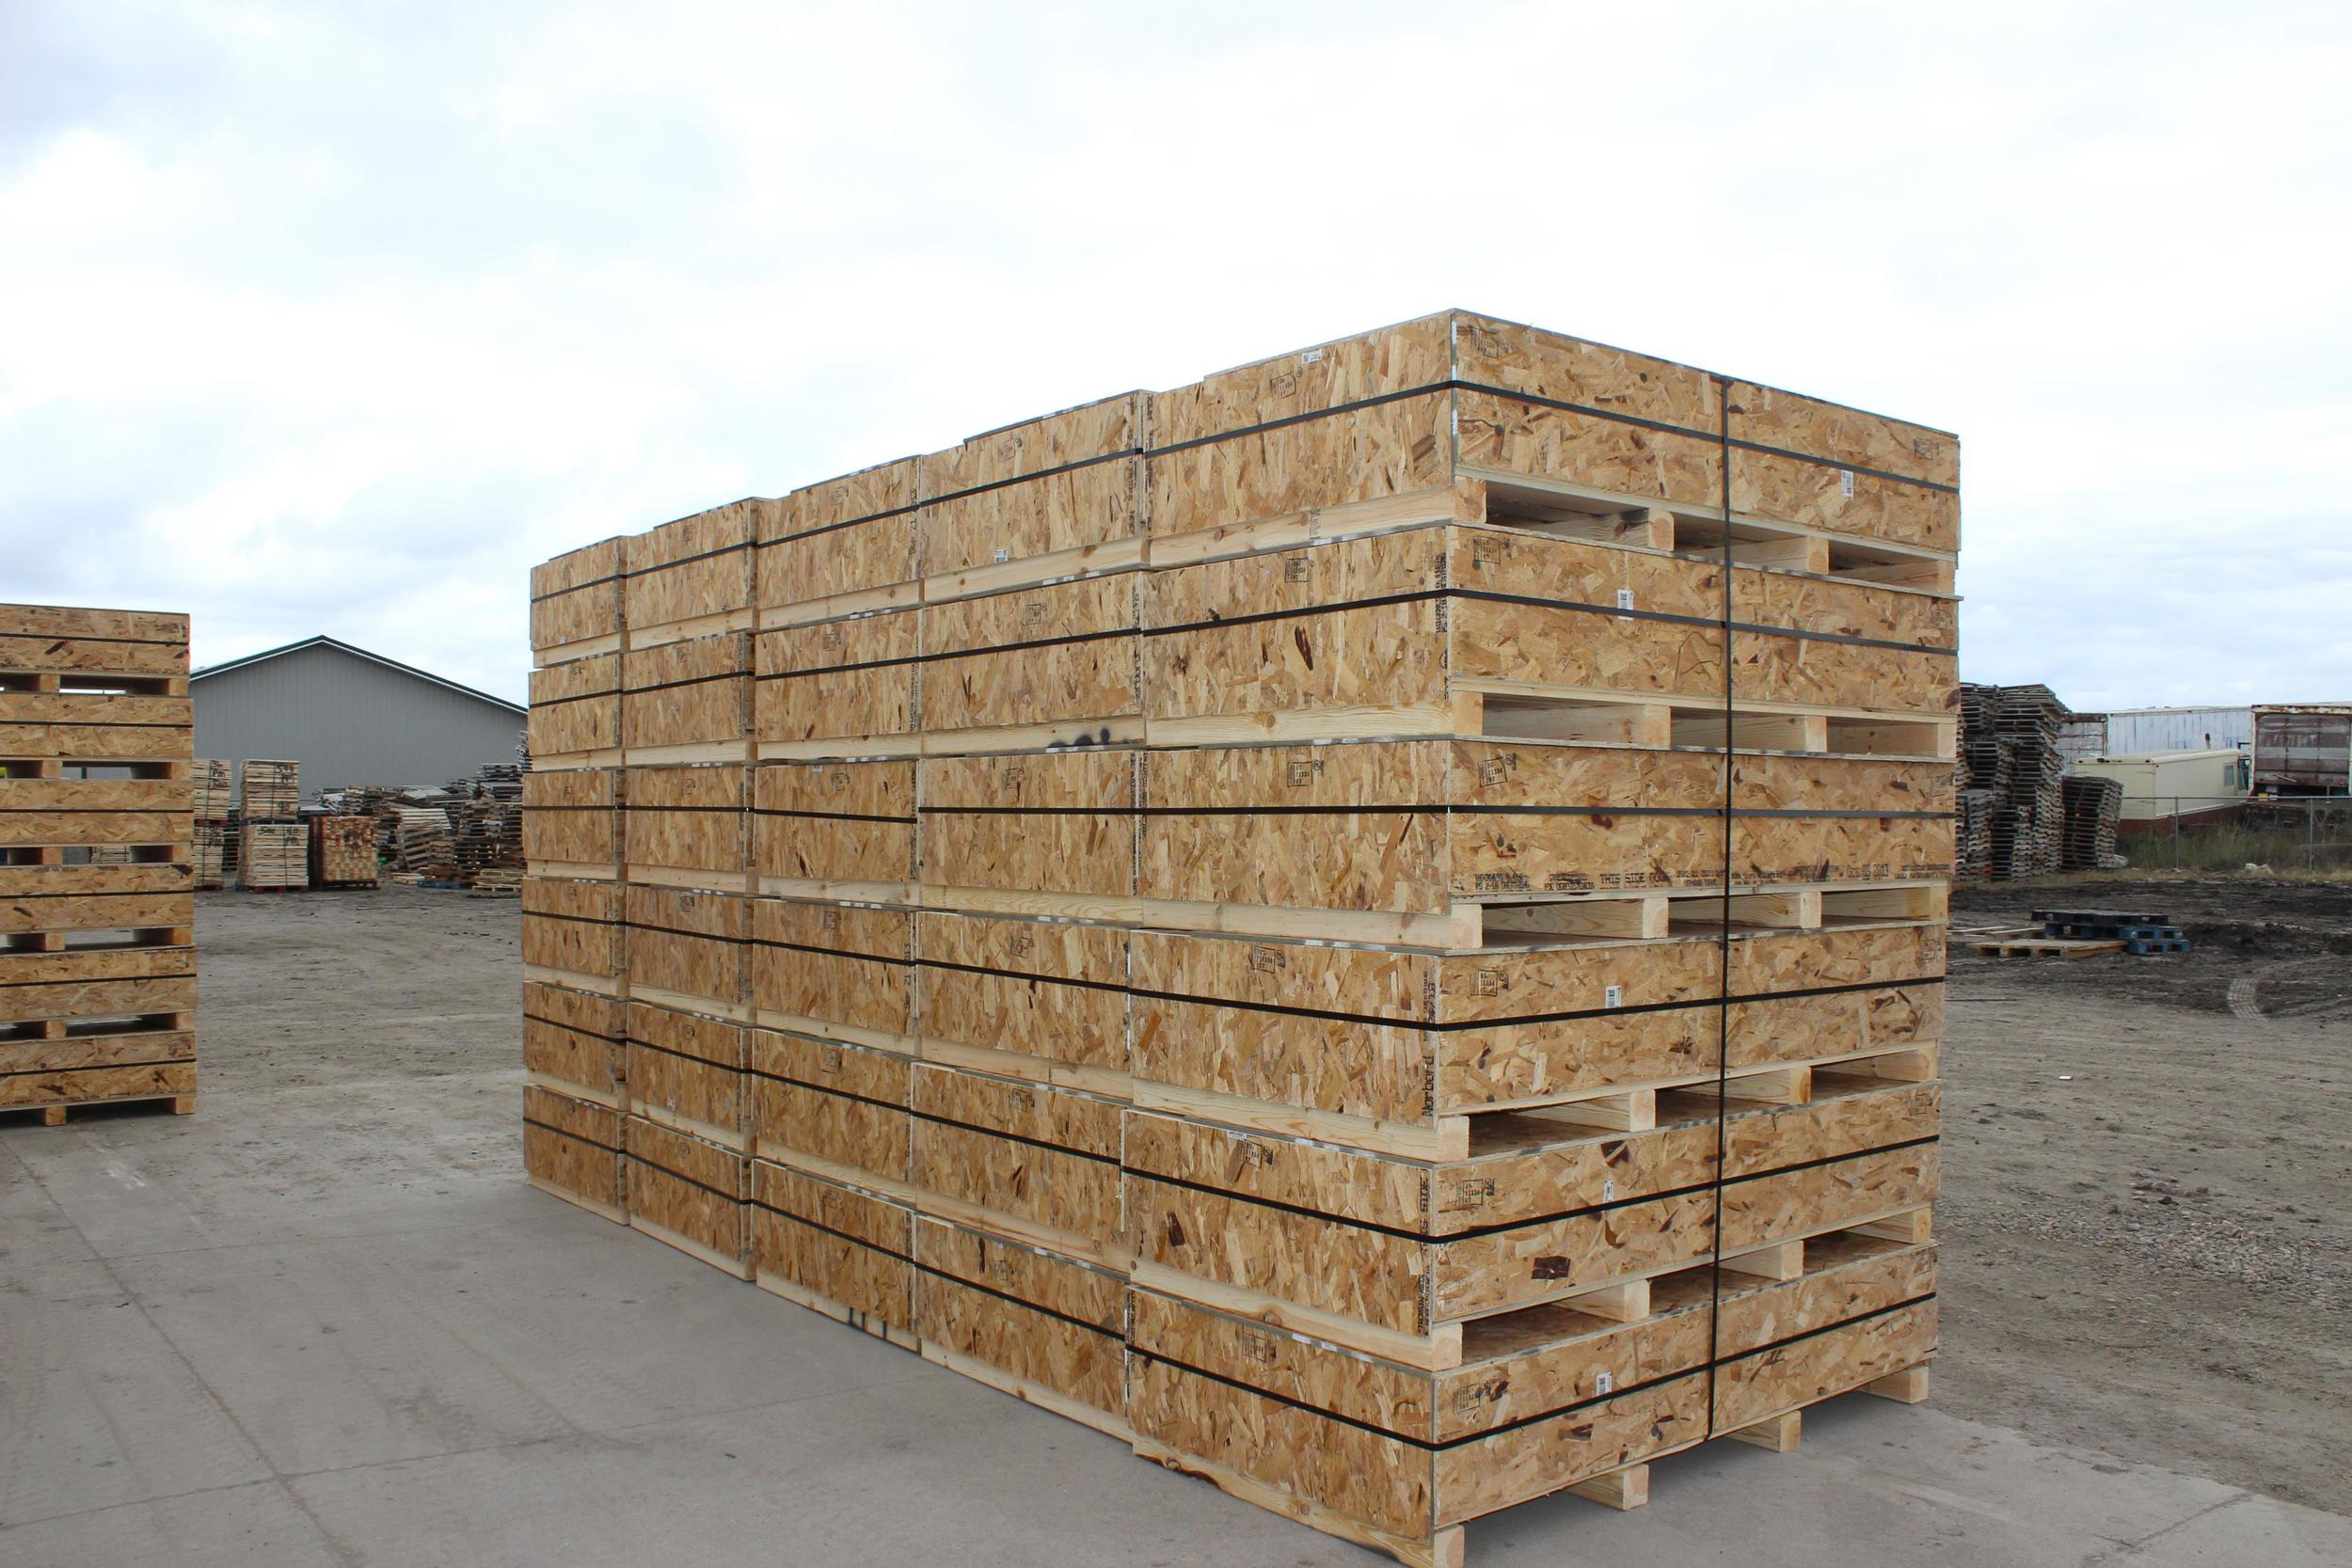 Oilfield flare crates